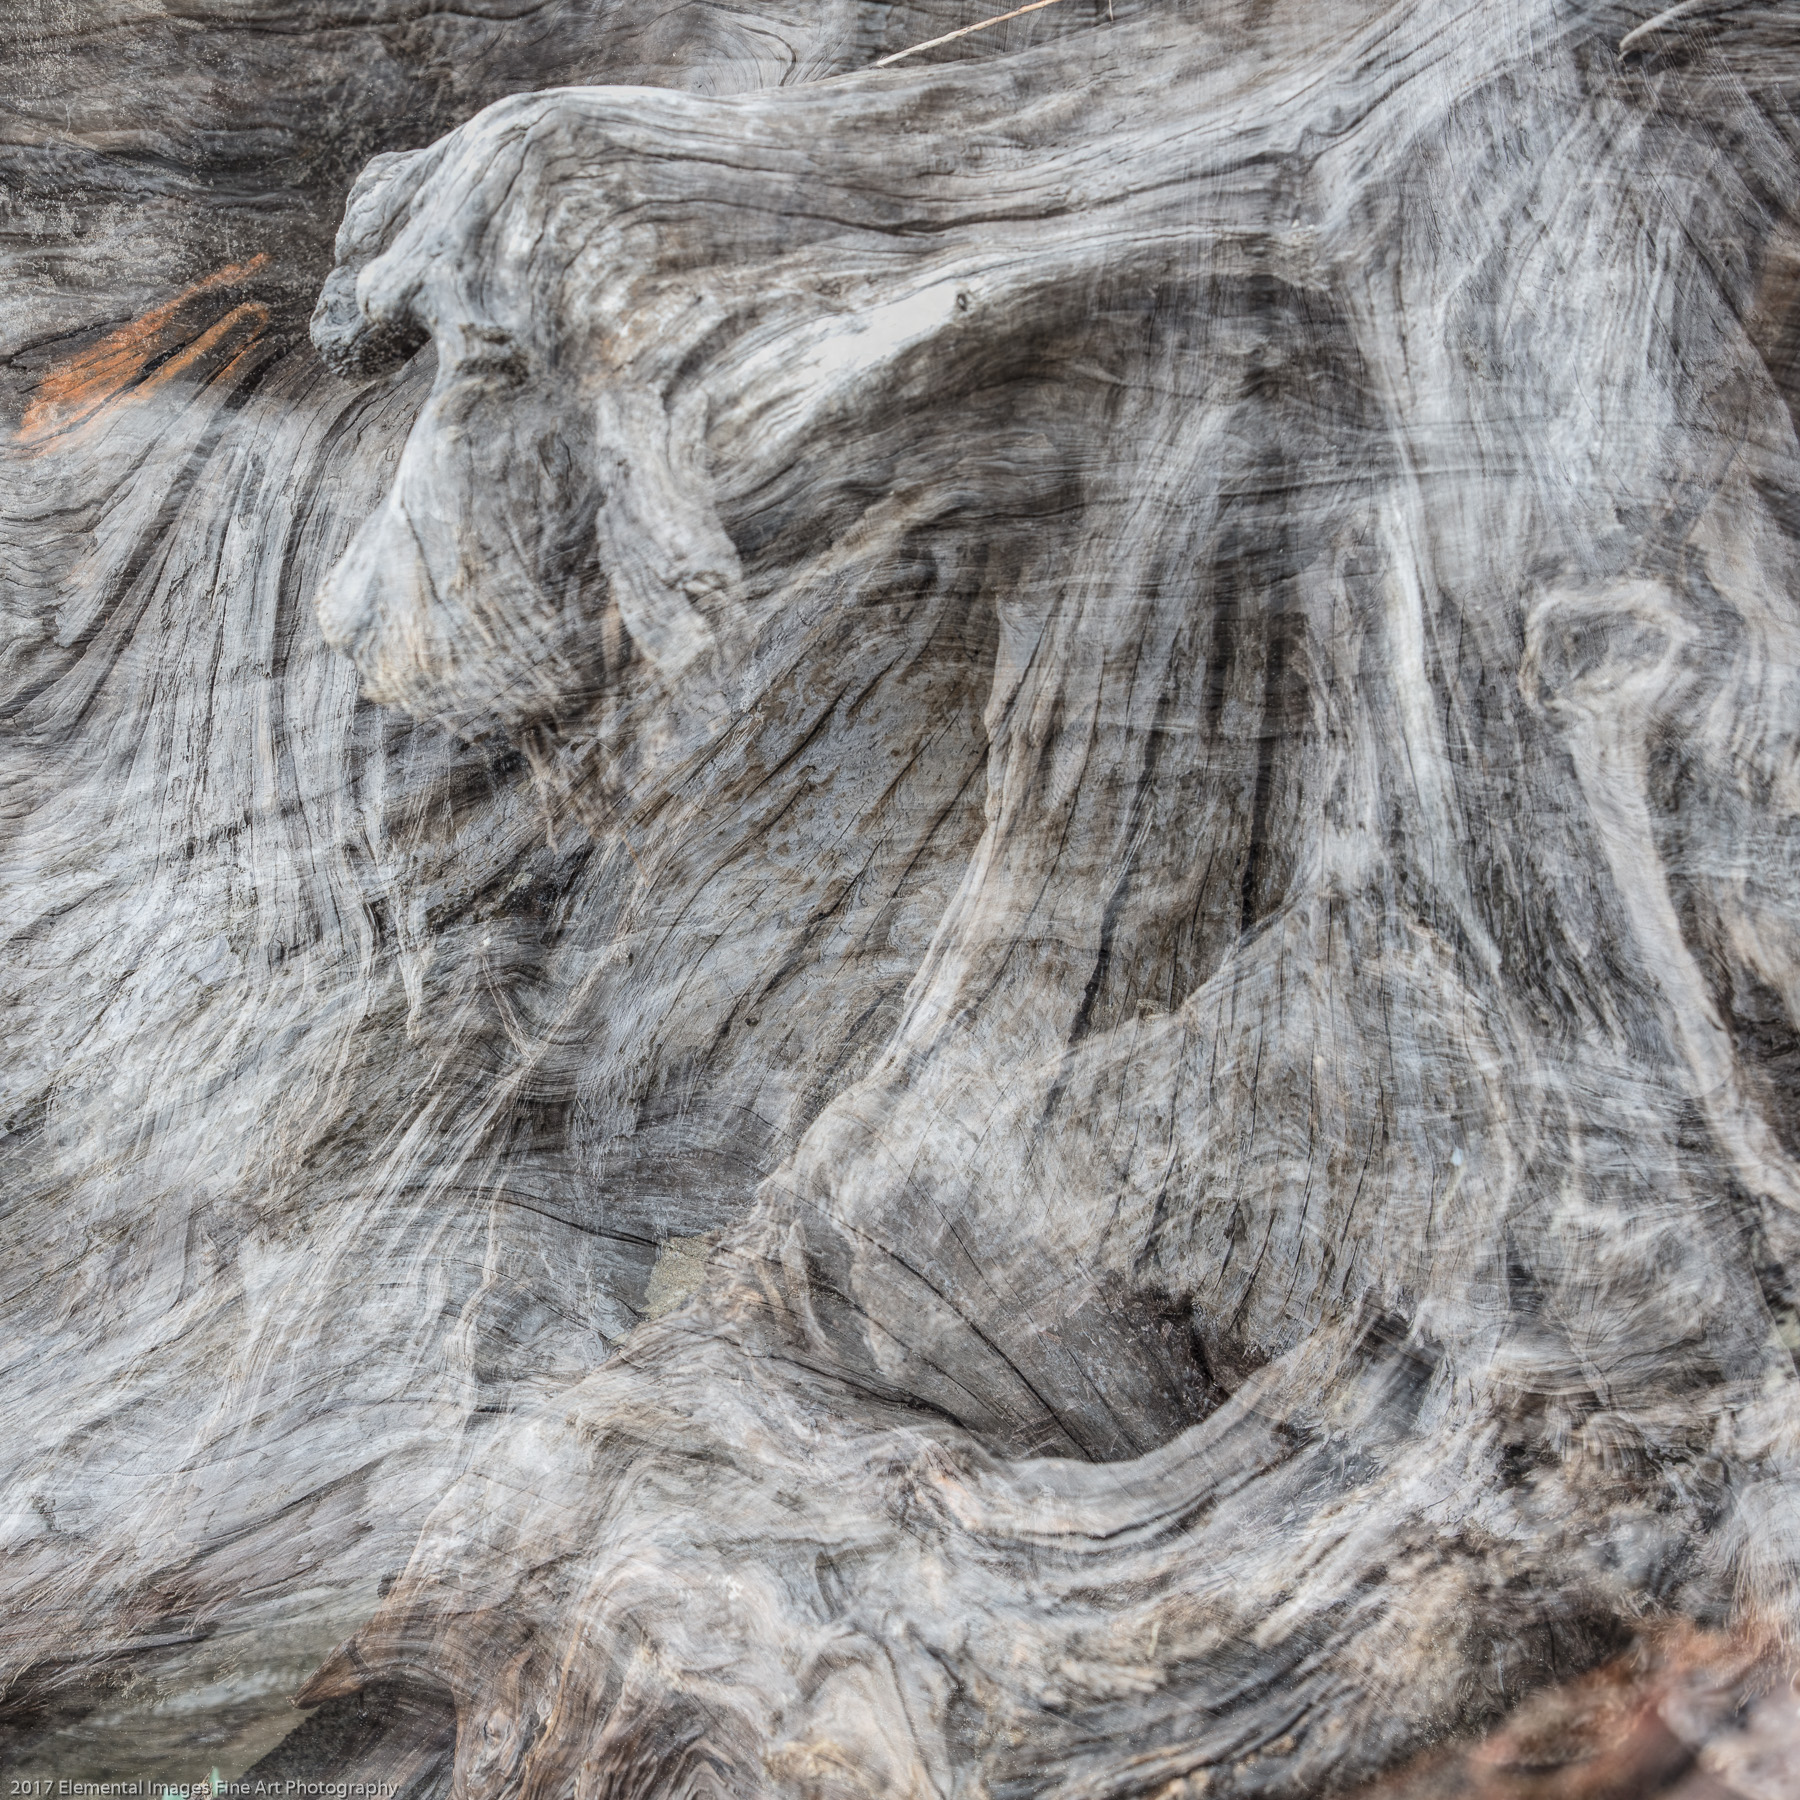 Driftwood #21   Bandon   OR   USA - © 2017 Elemental Images Fine Art Photography - All Rights Reserved Worldwide